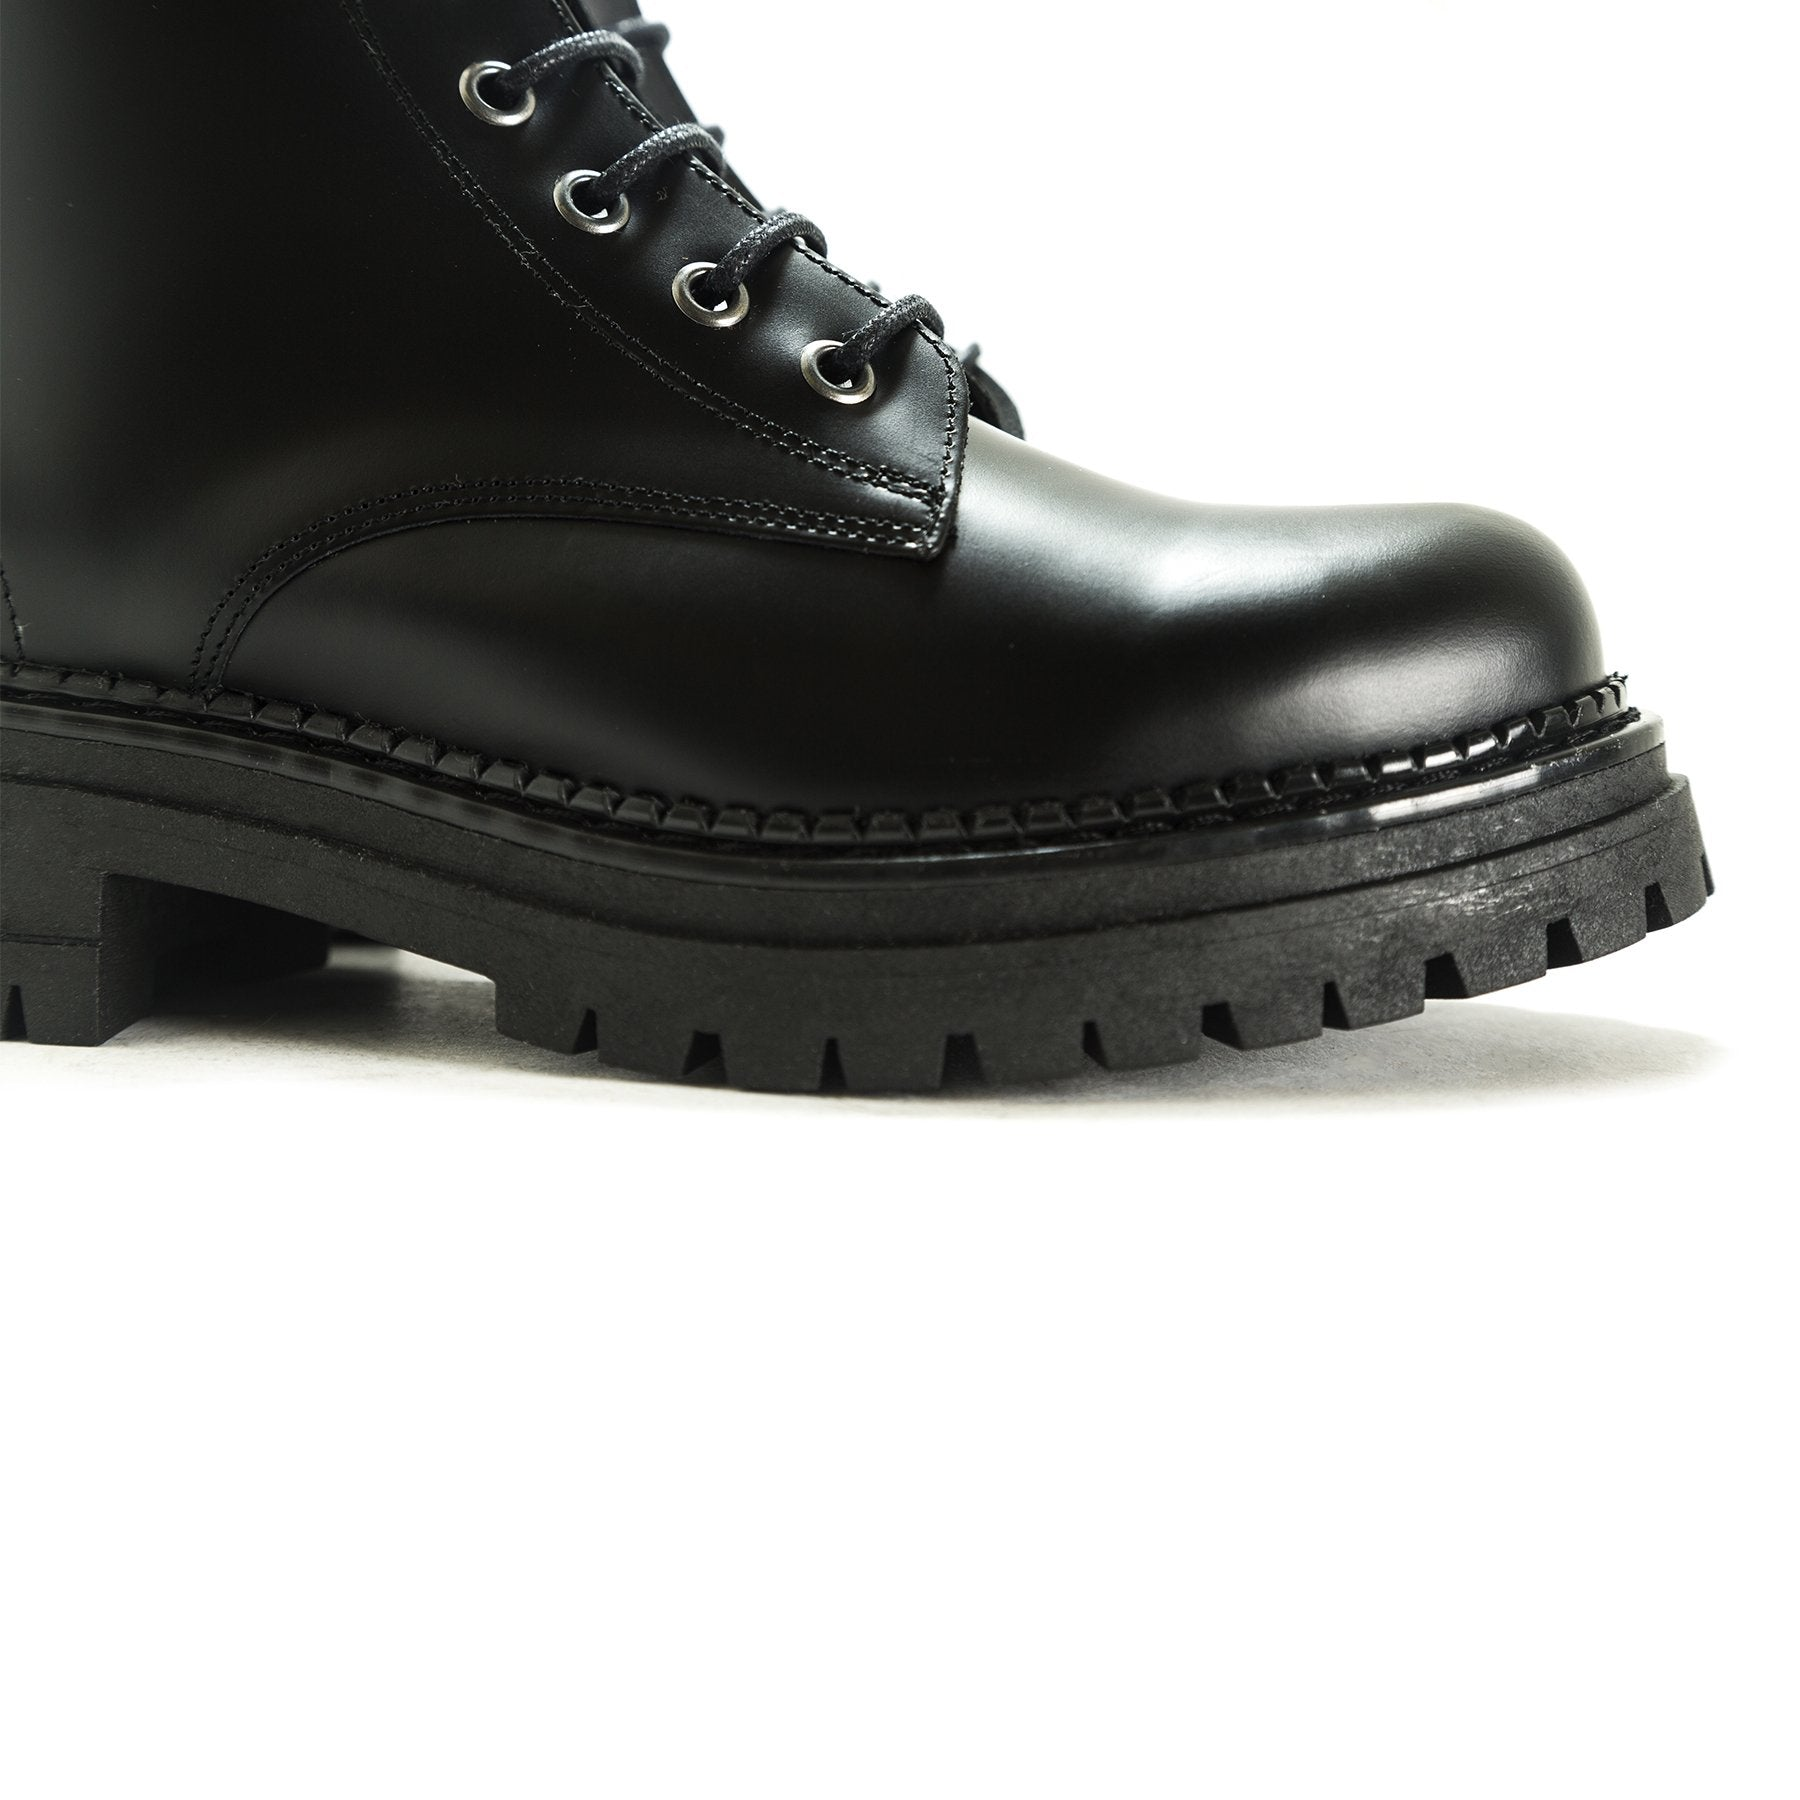 Rambo Black Leather Boots